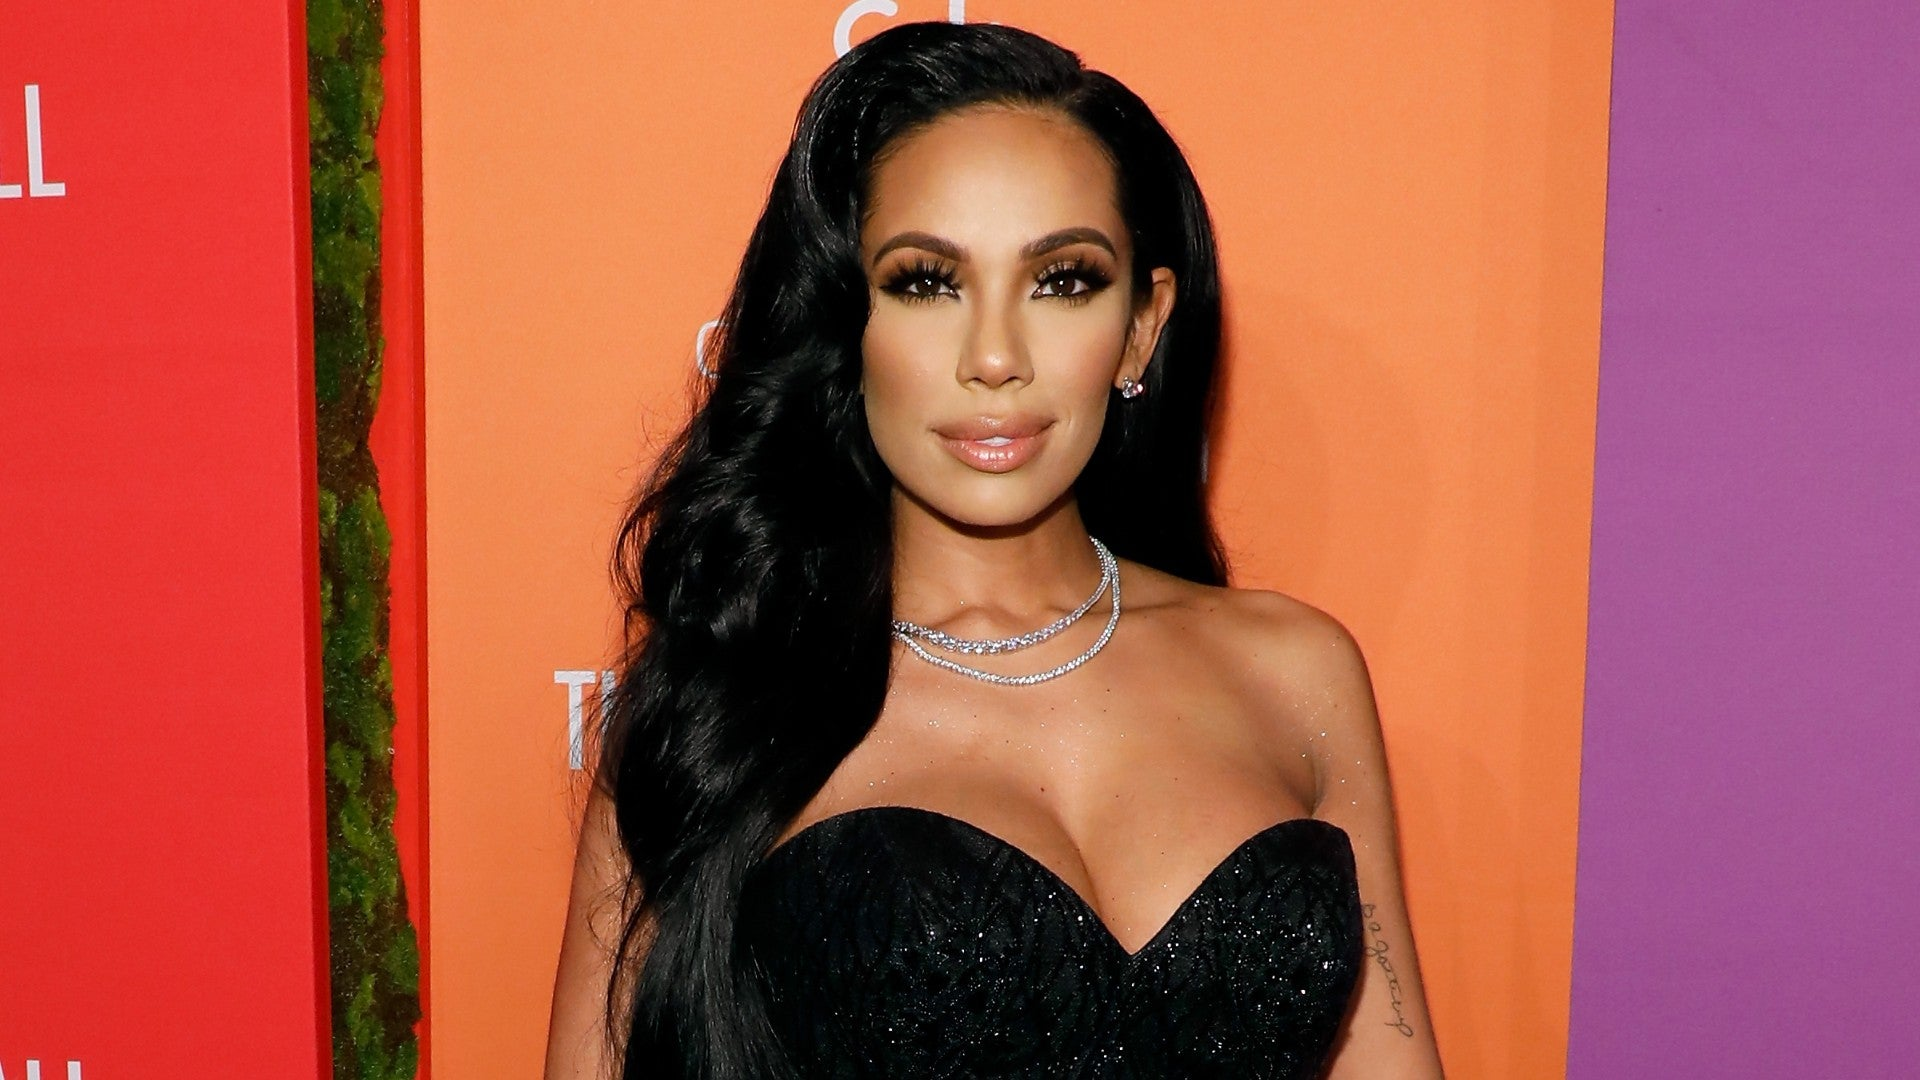 Erica Mena Poses Topless And Fans Are Mind Blown